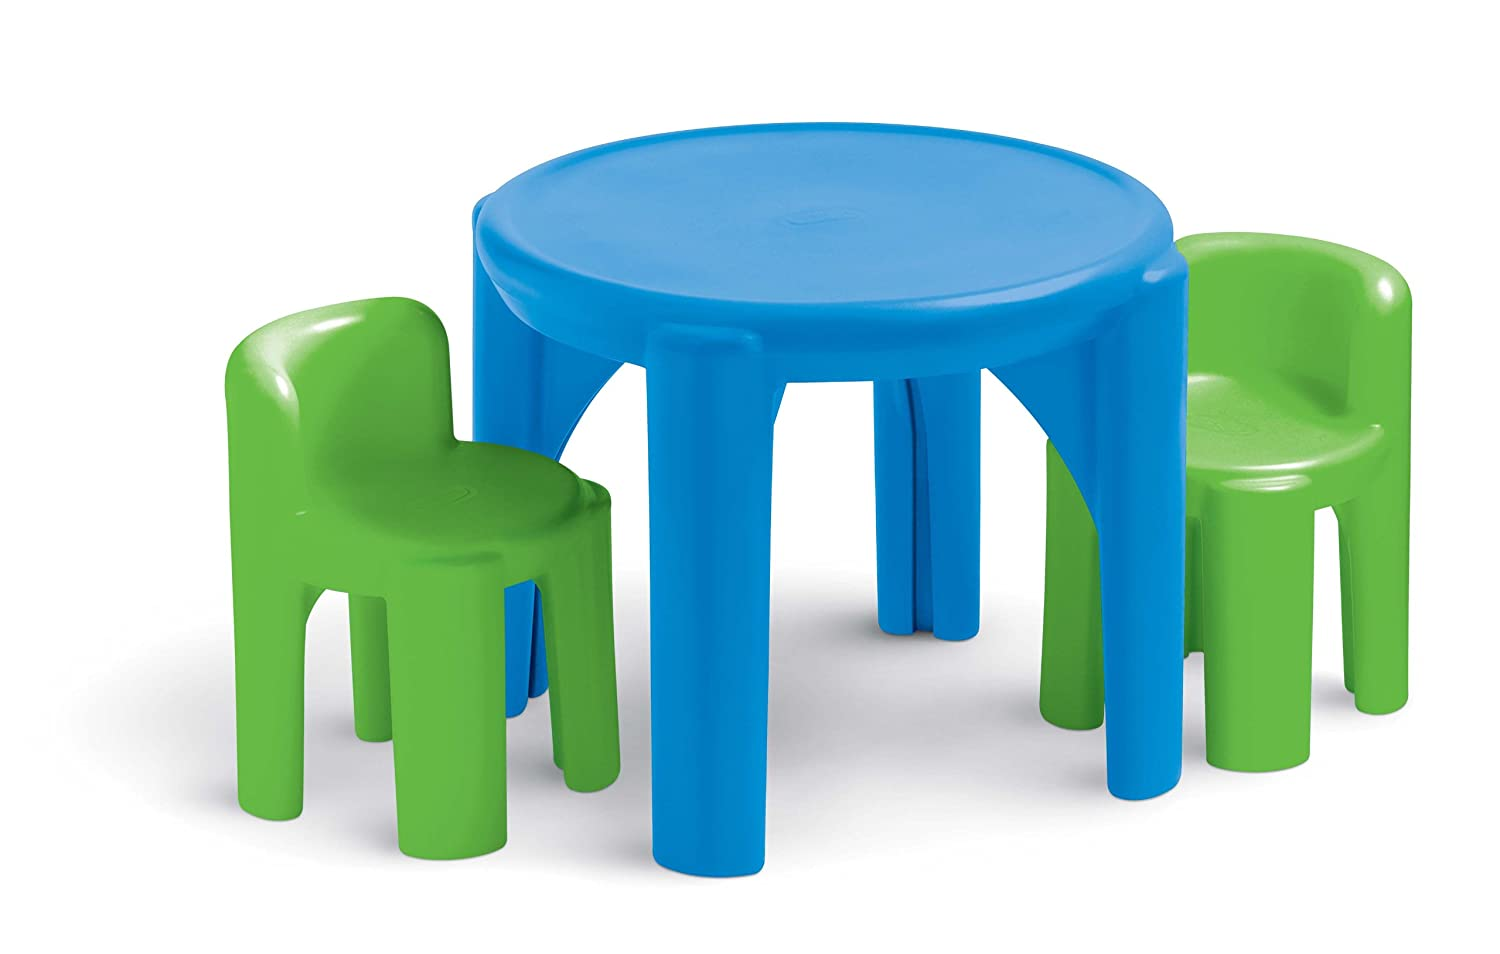 Amazon.com Little Tikes Bright \u0027n Bold Table \u0026 Chairs Green/Blue Toys \u0026 Games  sc 1 st  Amazon.com & Amazon.com: Little Tikes Bright \u0027n Bold Table \u0026 Chairs Green/Blue ...